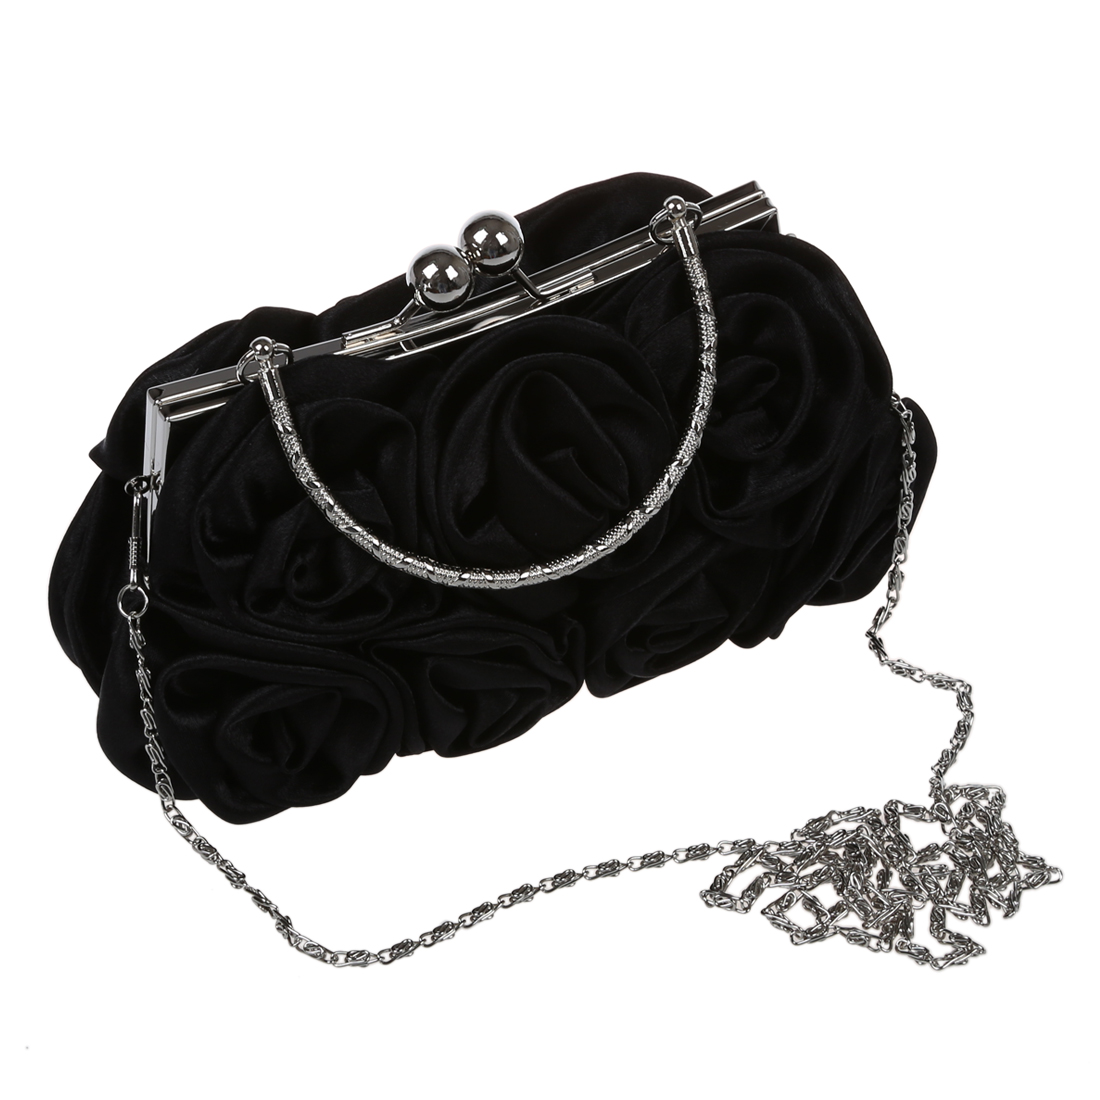 5 pcs of Rosette Clutch Bag Evening Black Flower Purse Handbag Banquet Bag